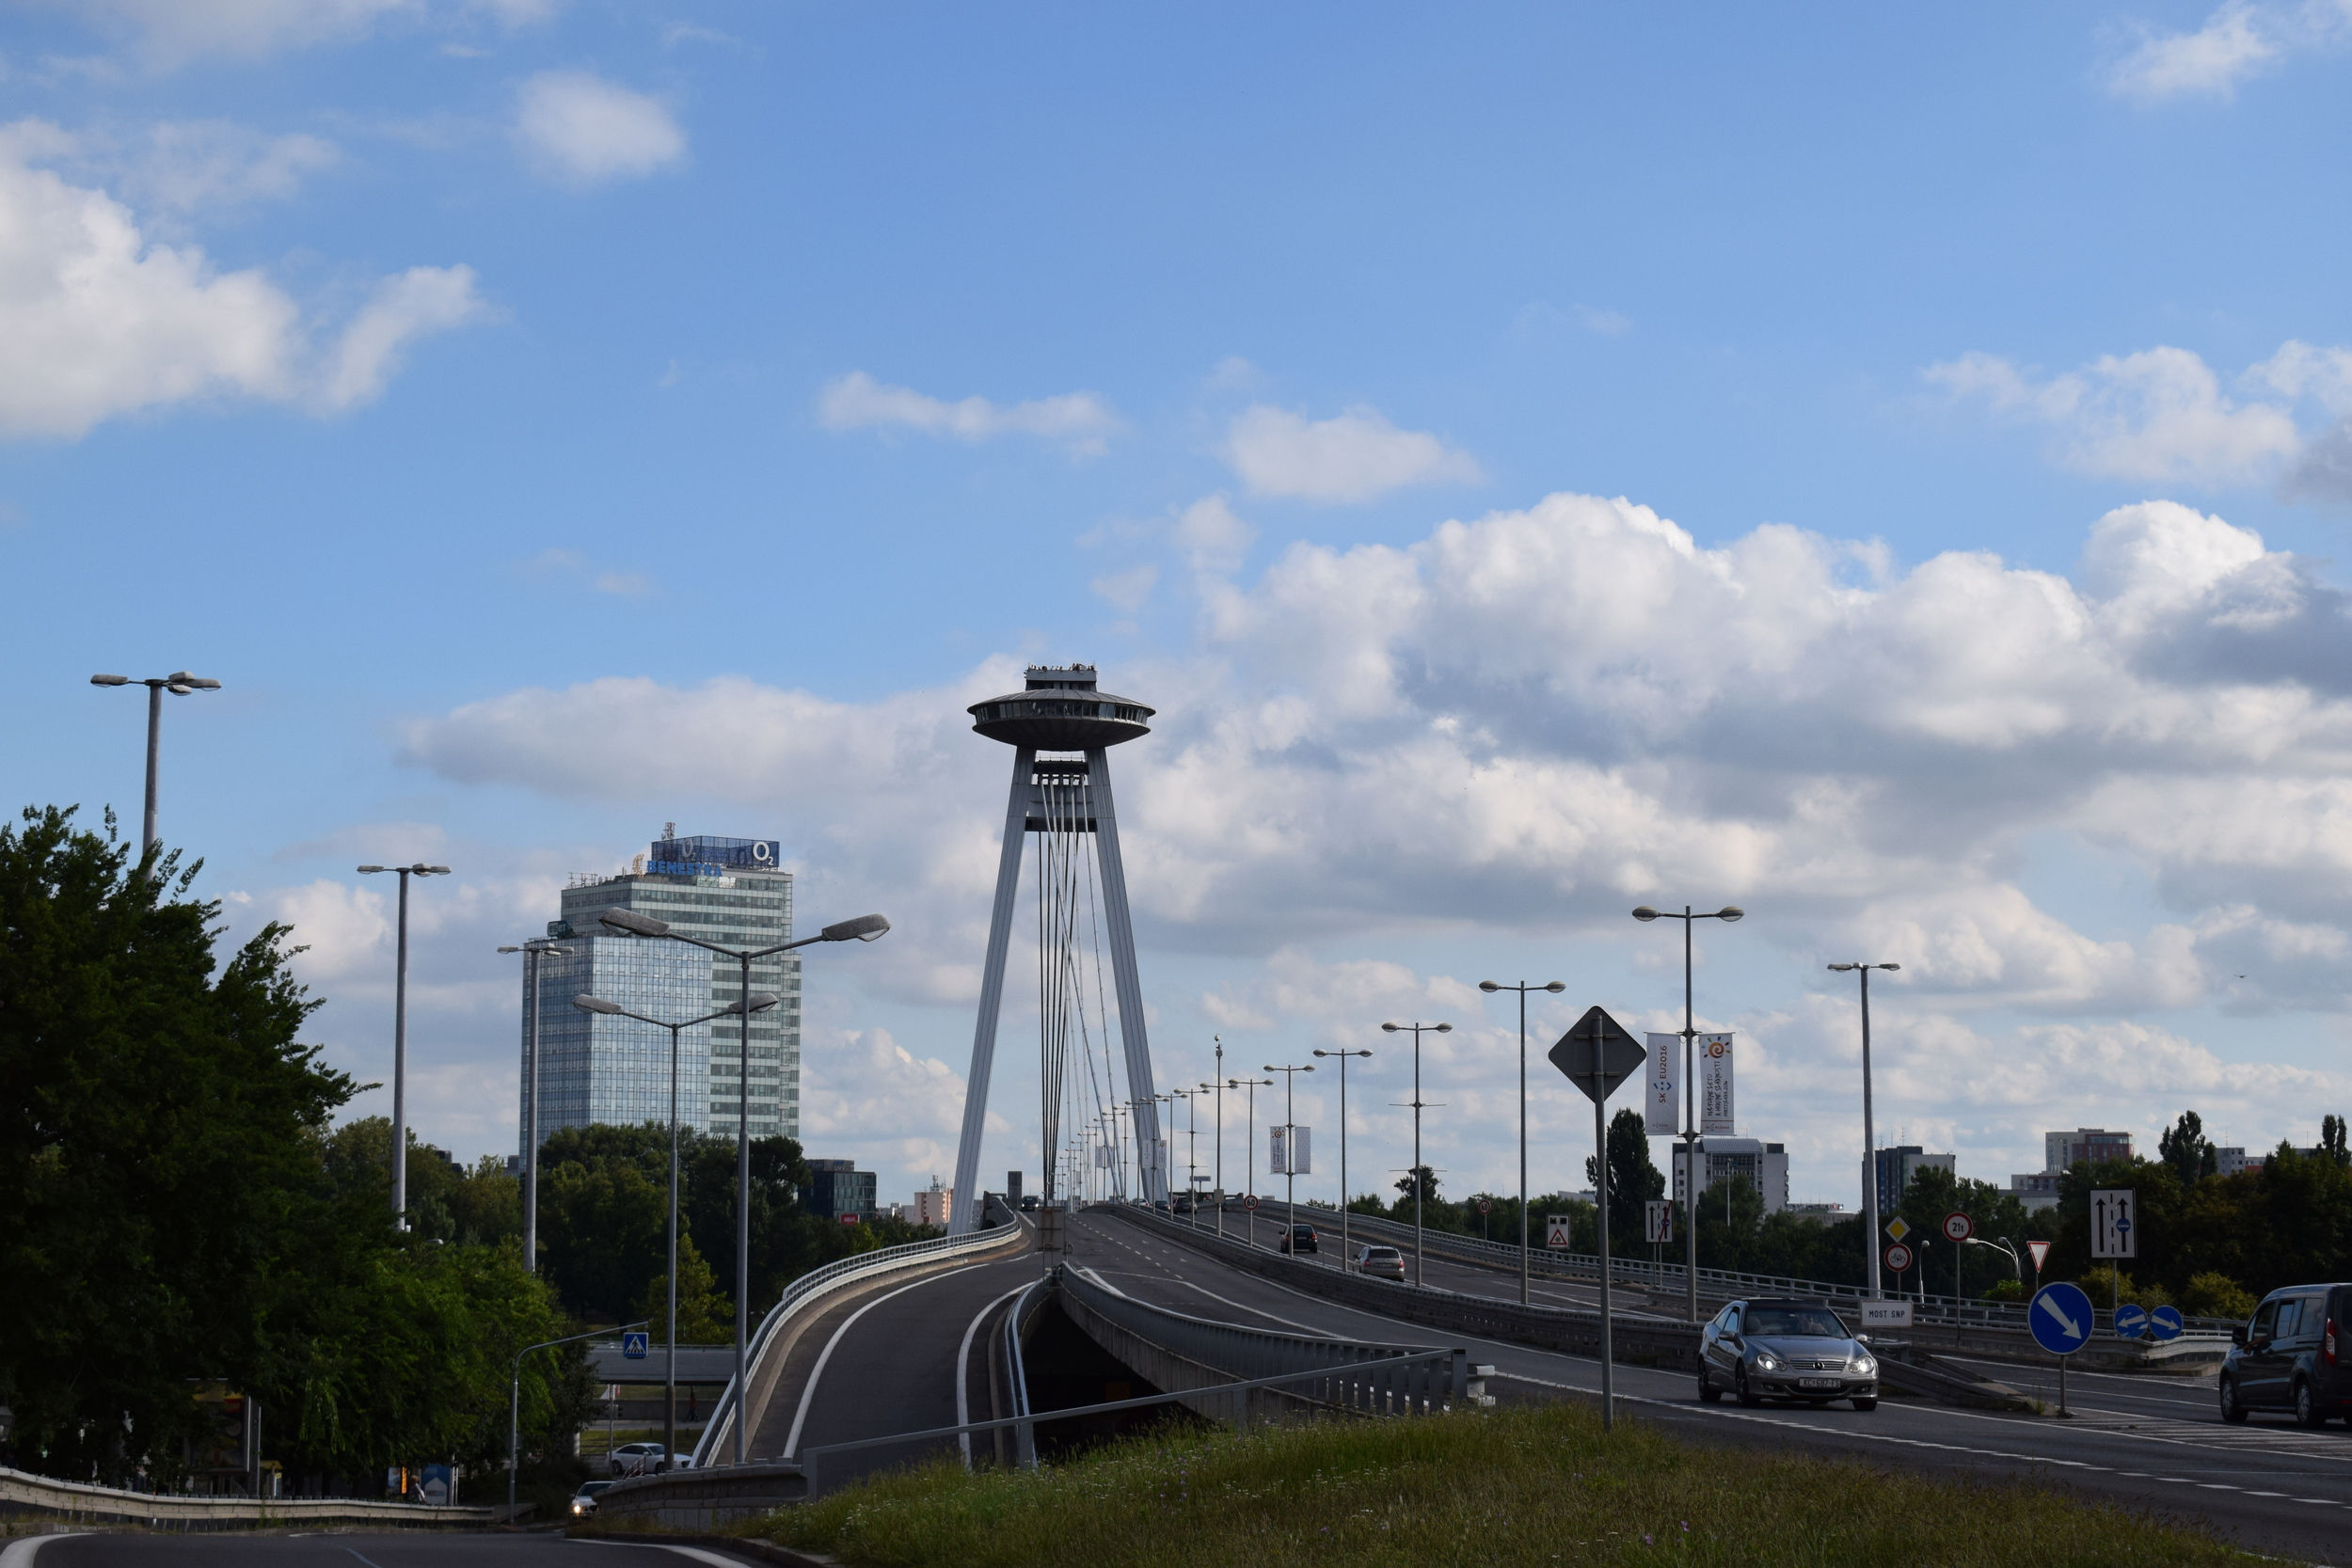 The UFO restaurant and observation deck is a towering presence.